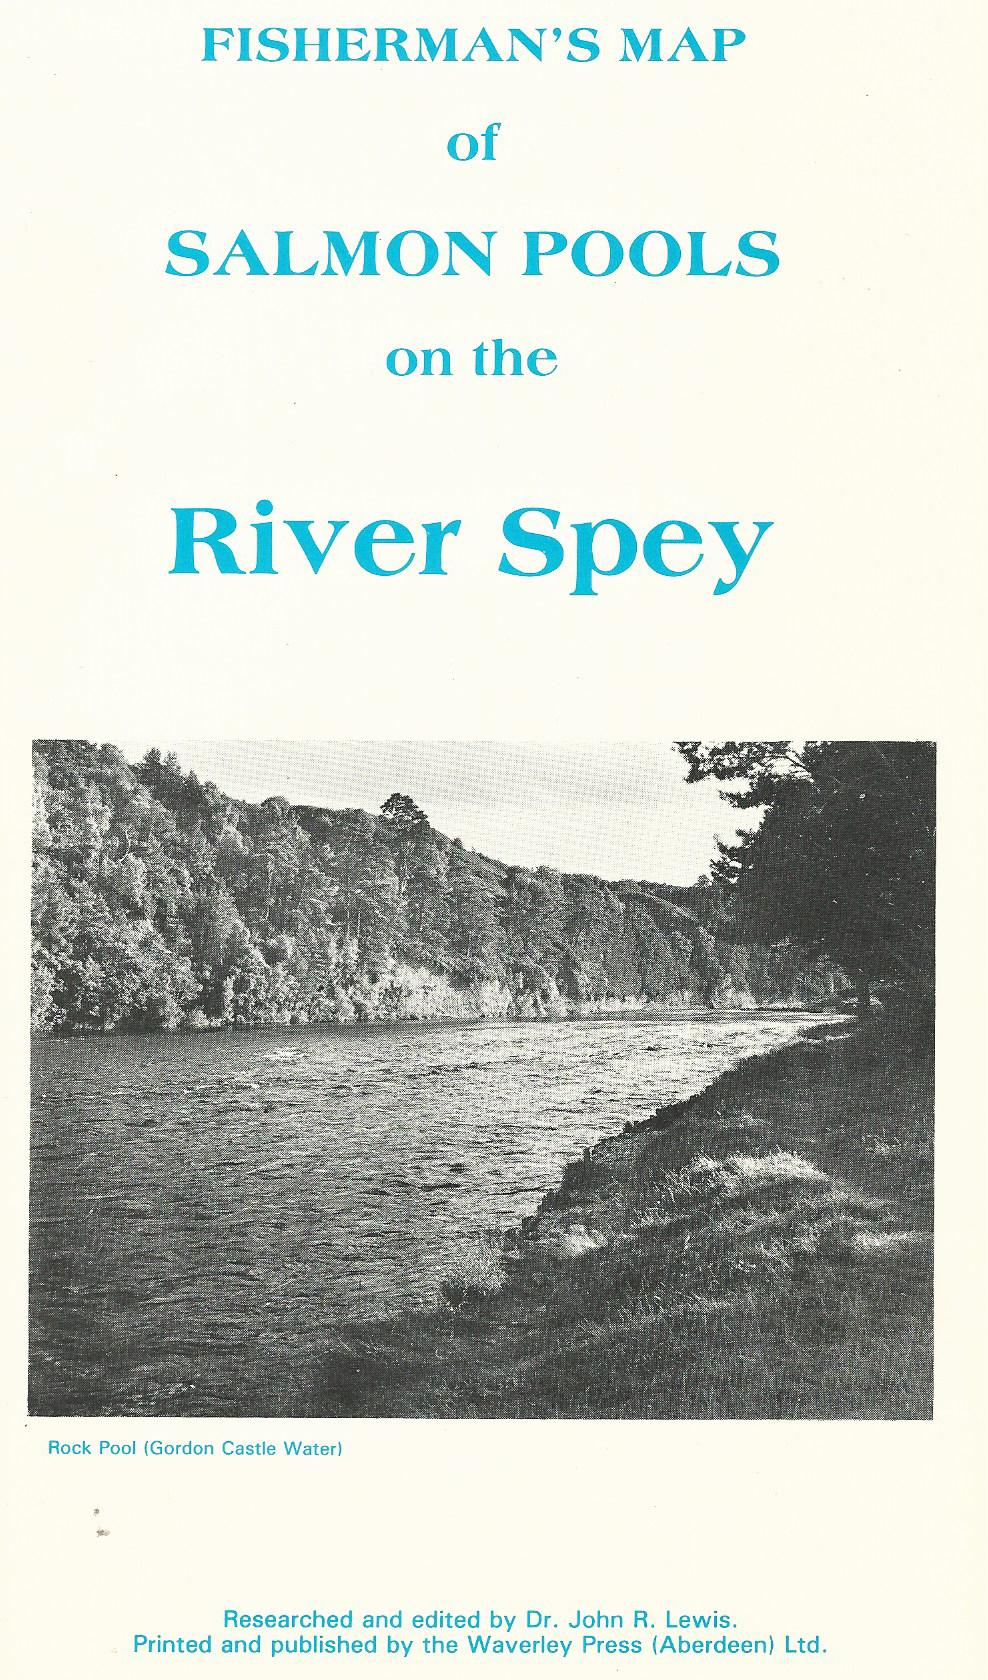 Image for Fisherman's Map of Salmon Pools of the River Spey.